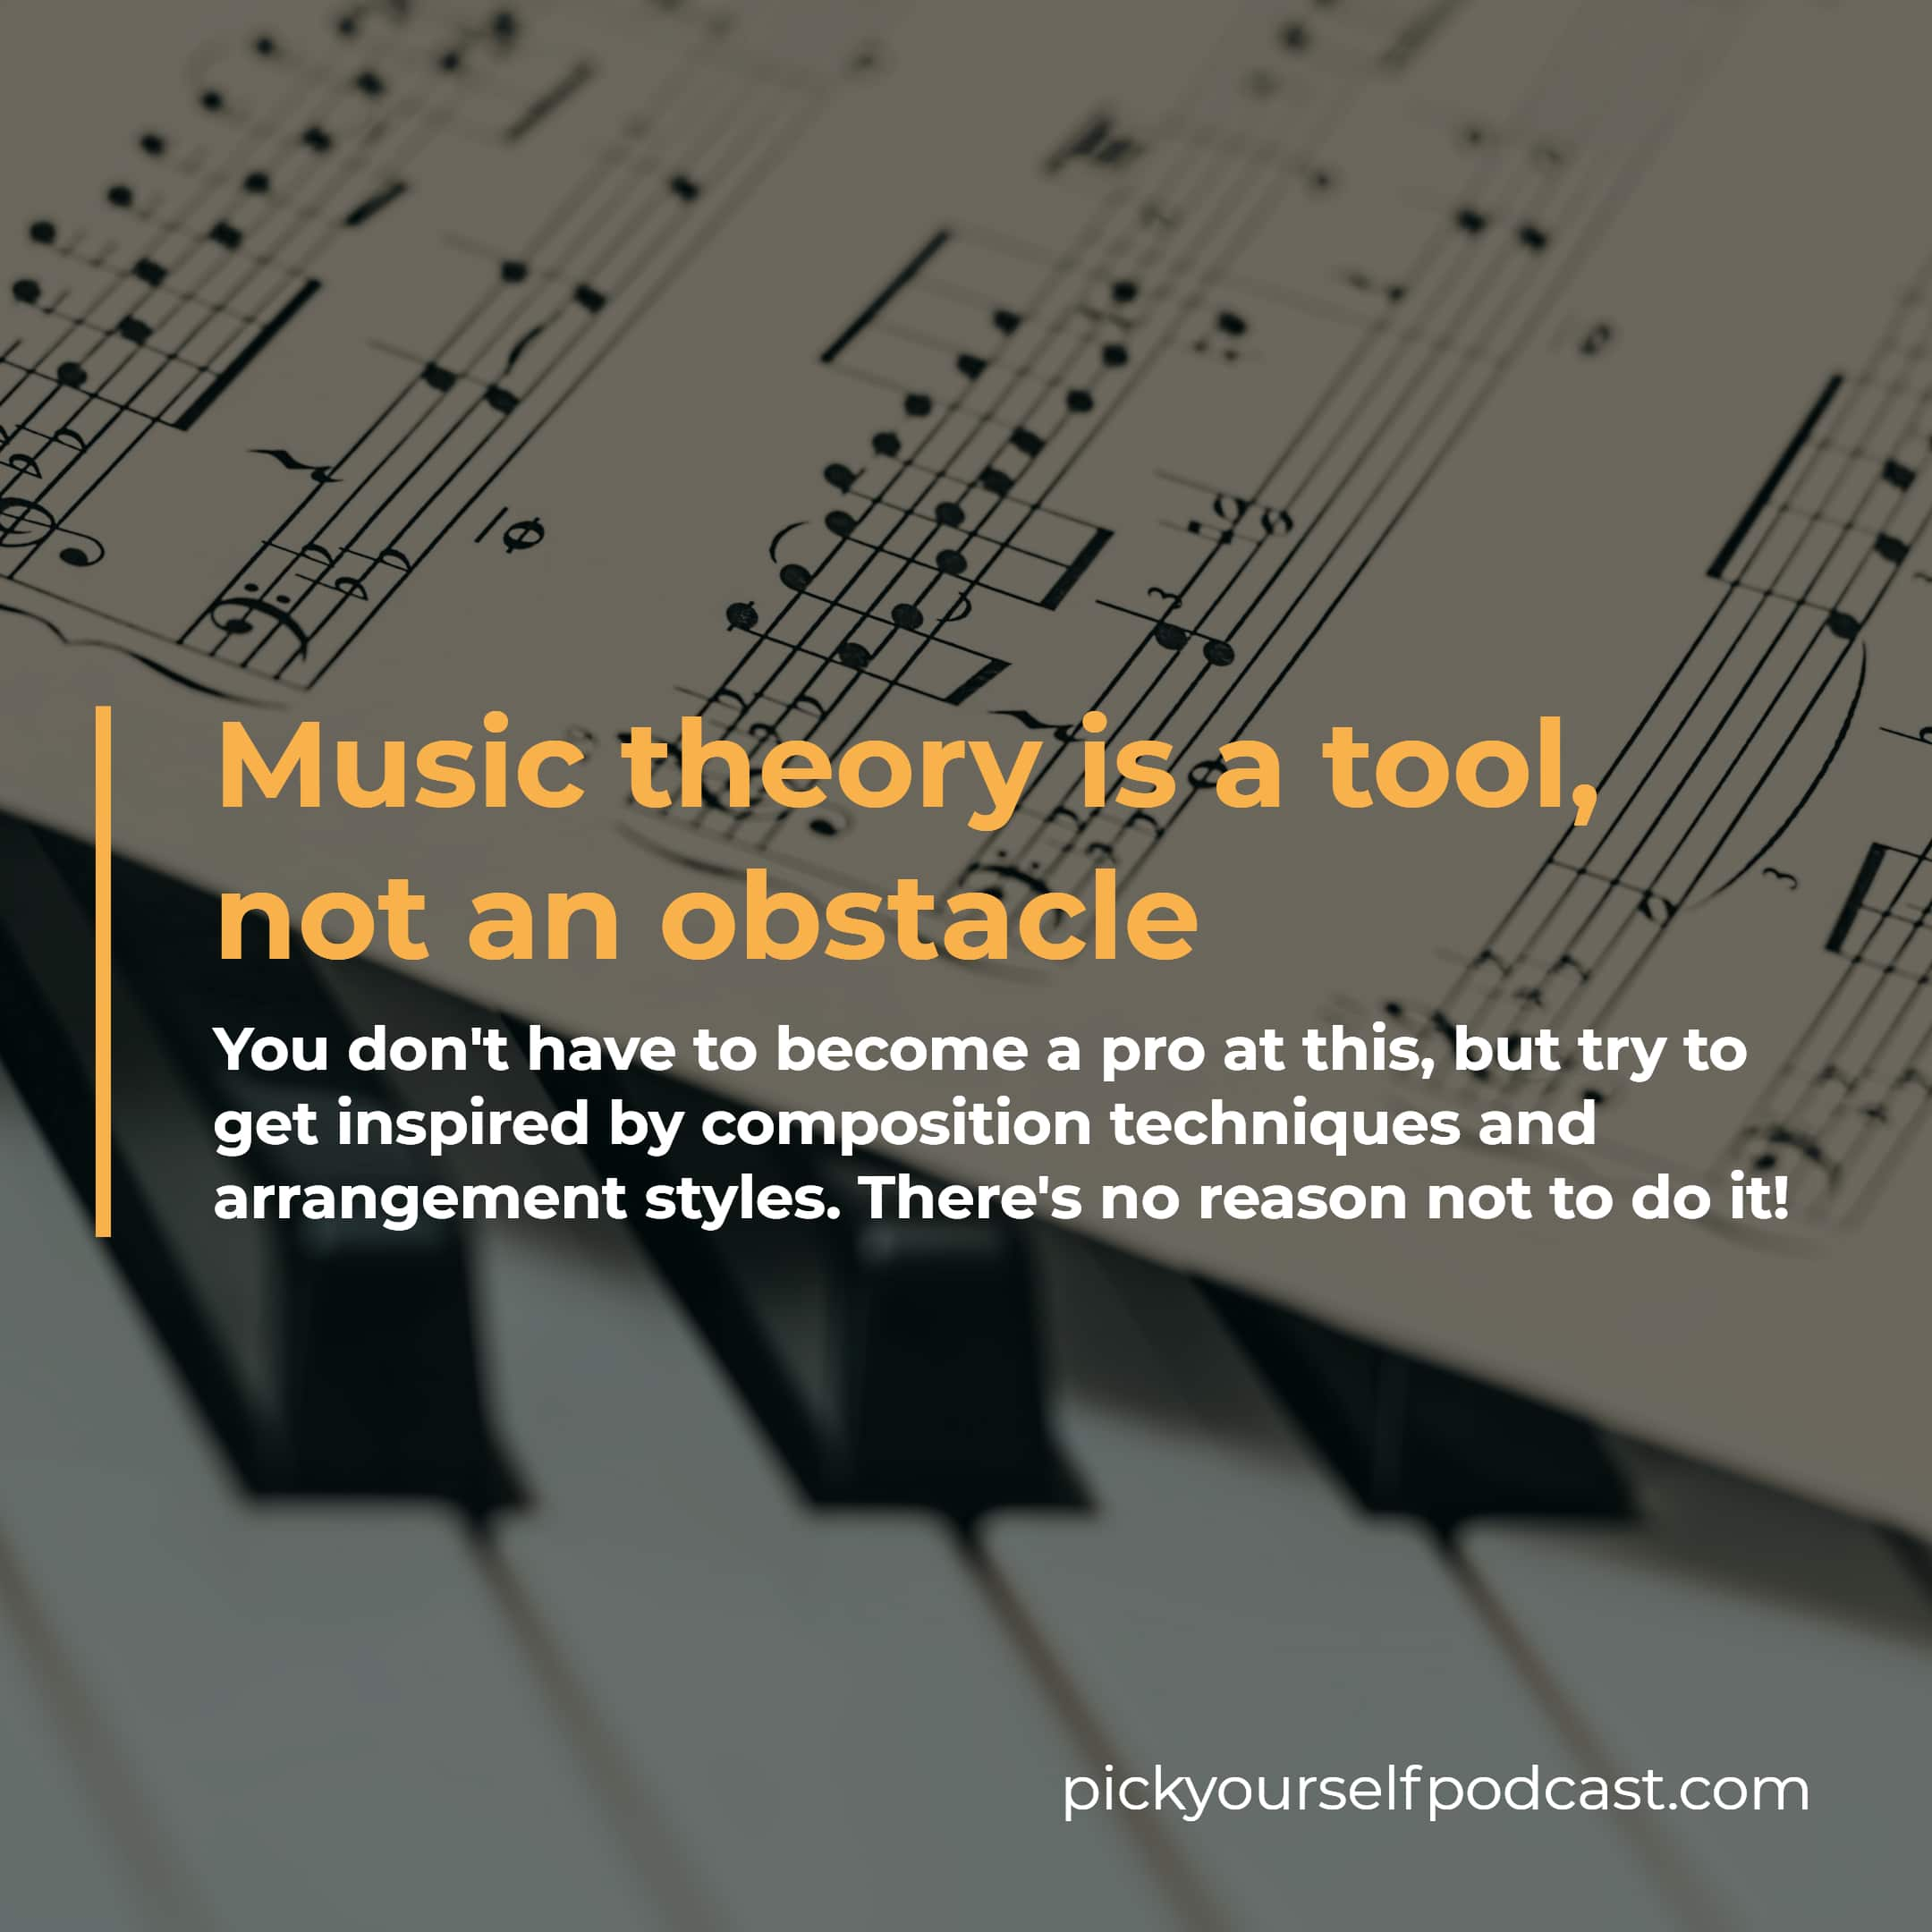 Music theory is a tool, not an obstacle.